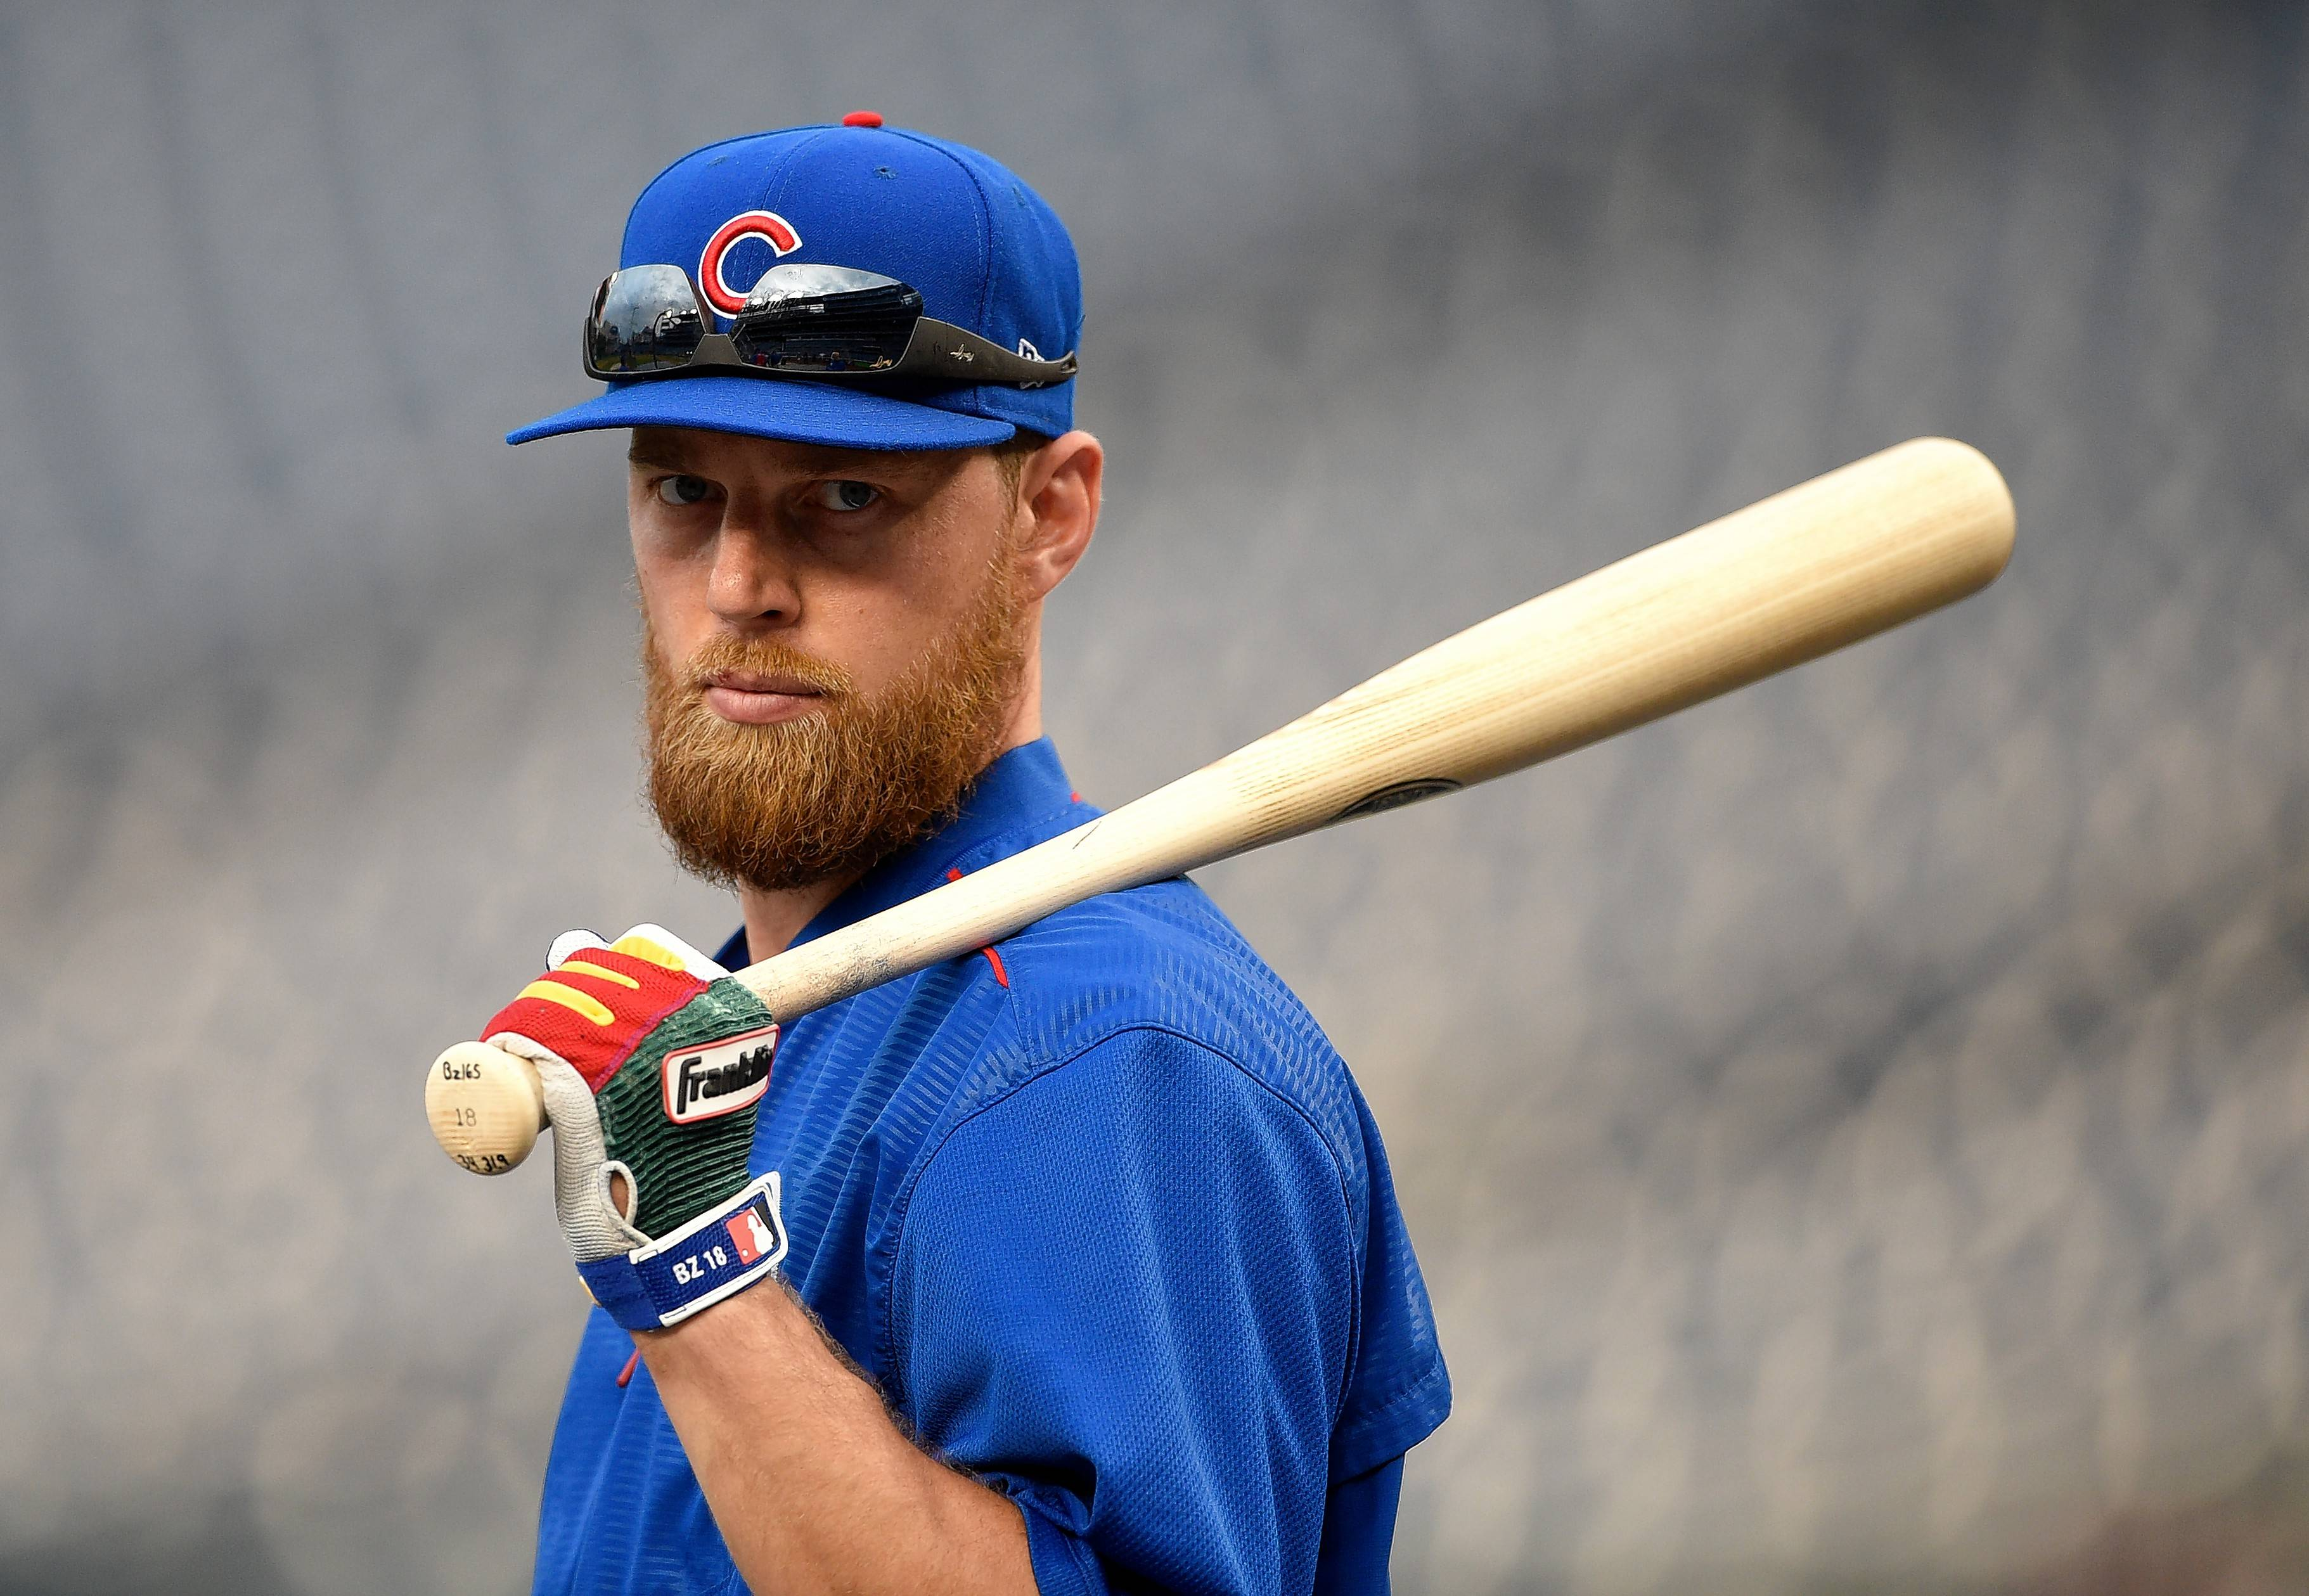 With his hitting and fielding Ben Zobrist gives Cubs manager Joe Maddon plenty of options at several positions.